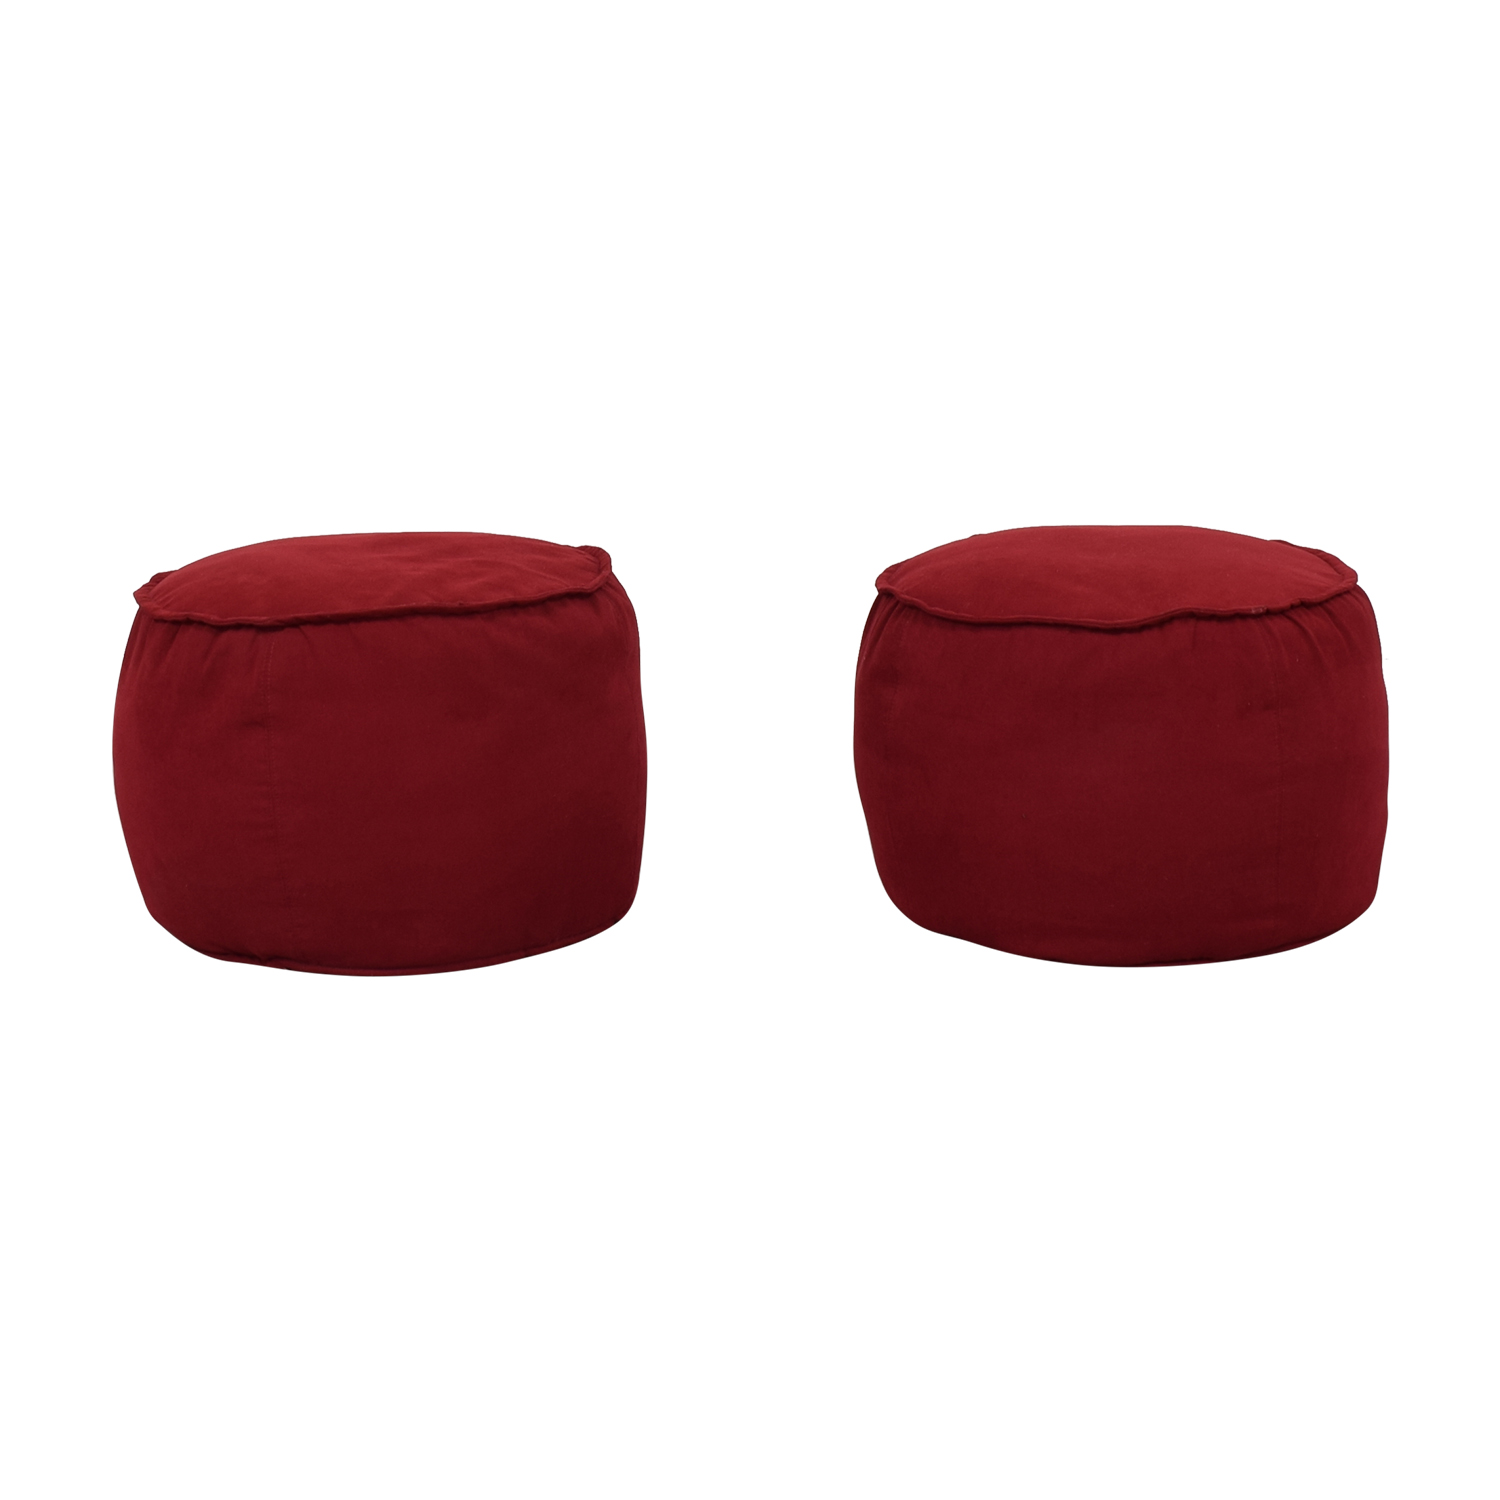 Room & Board Room & Board Red Round Ottomans for sale